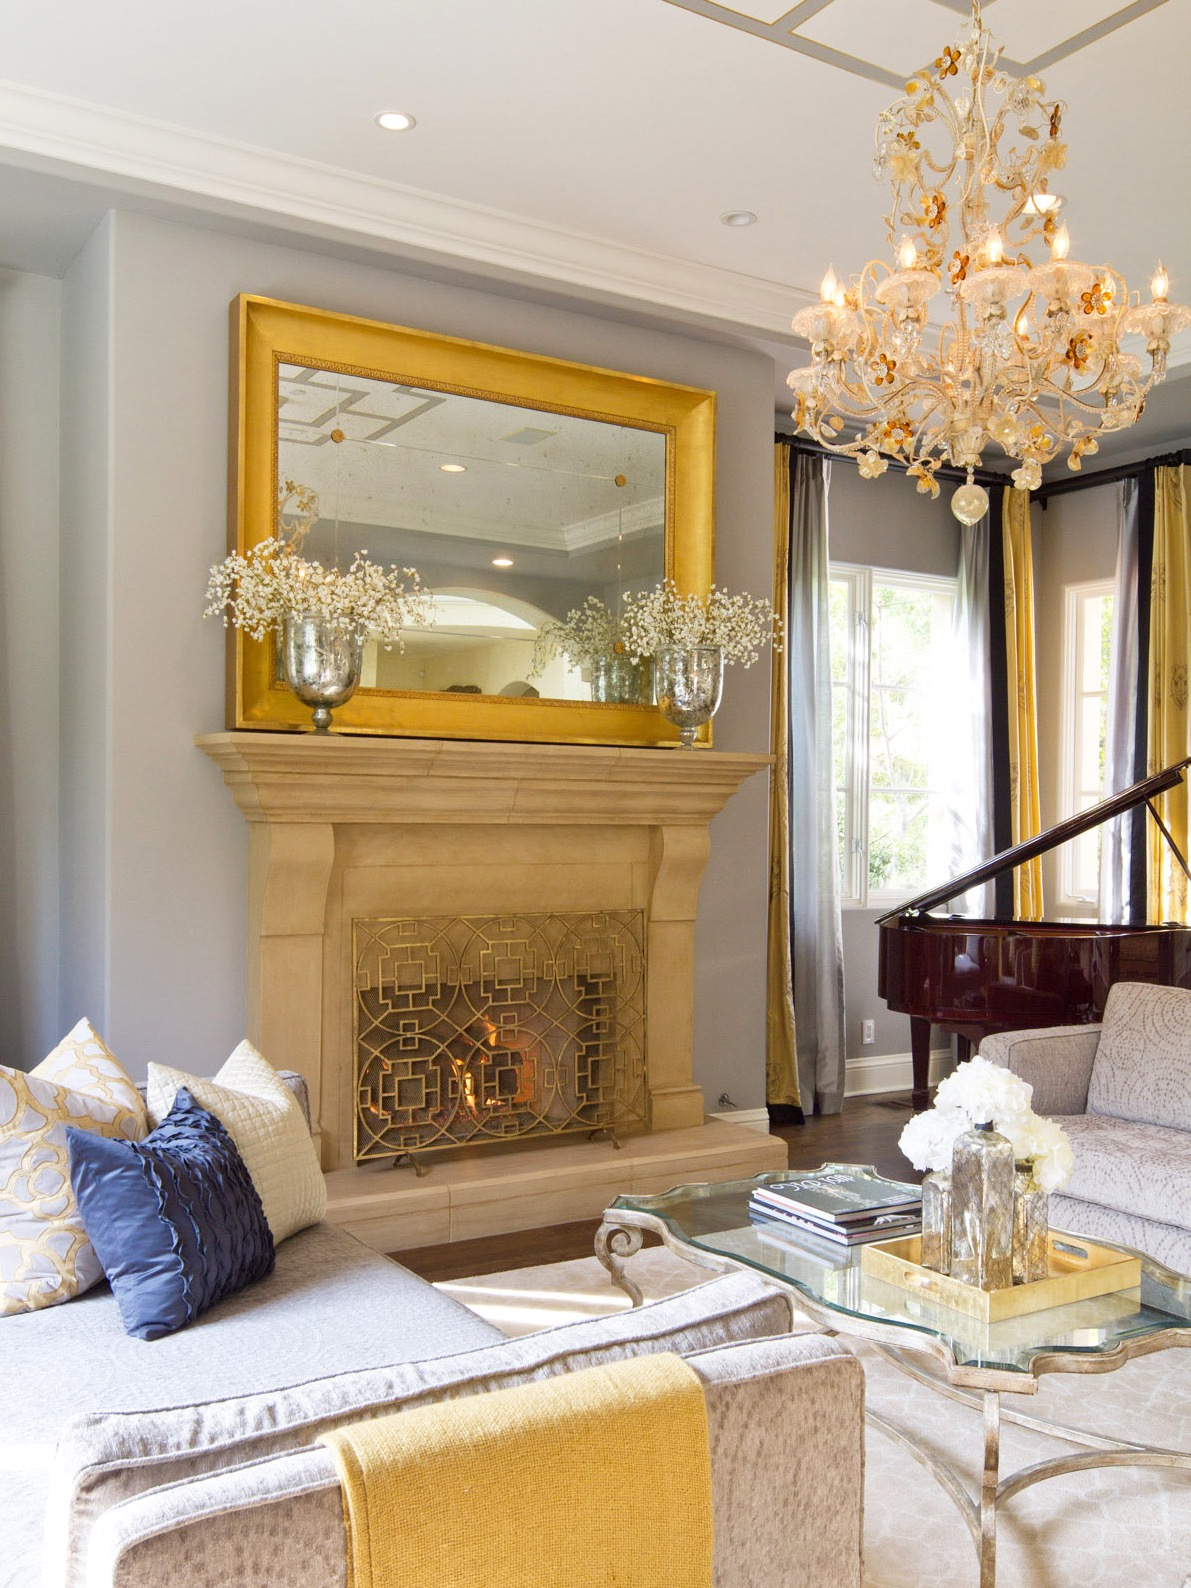 Glamorous Gold And Gray Living Room For Luxury Nuance (Image 7 of 32)